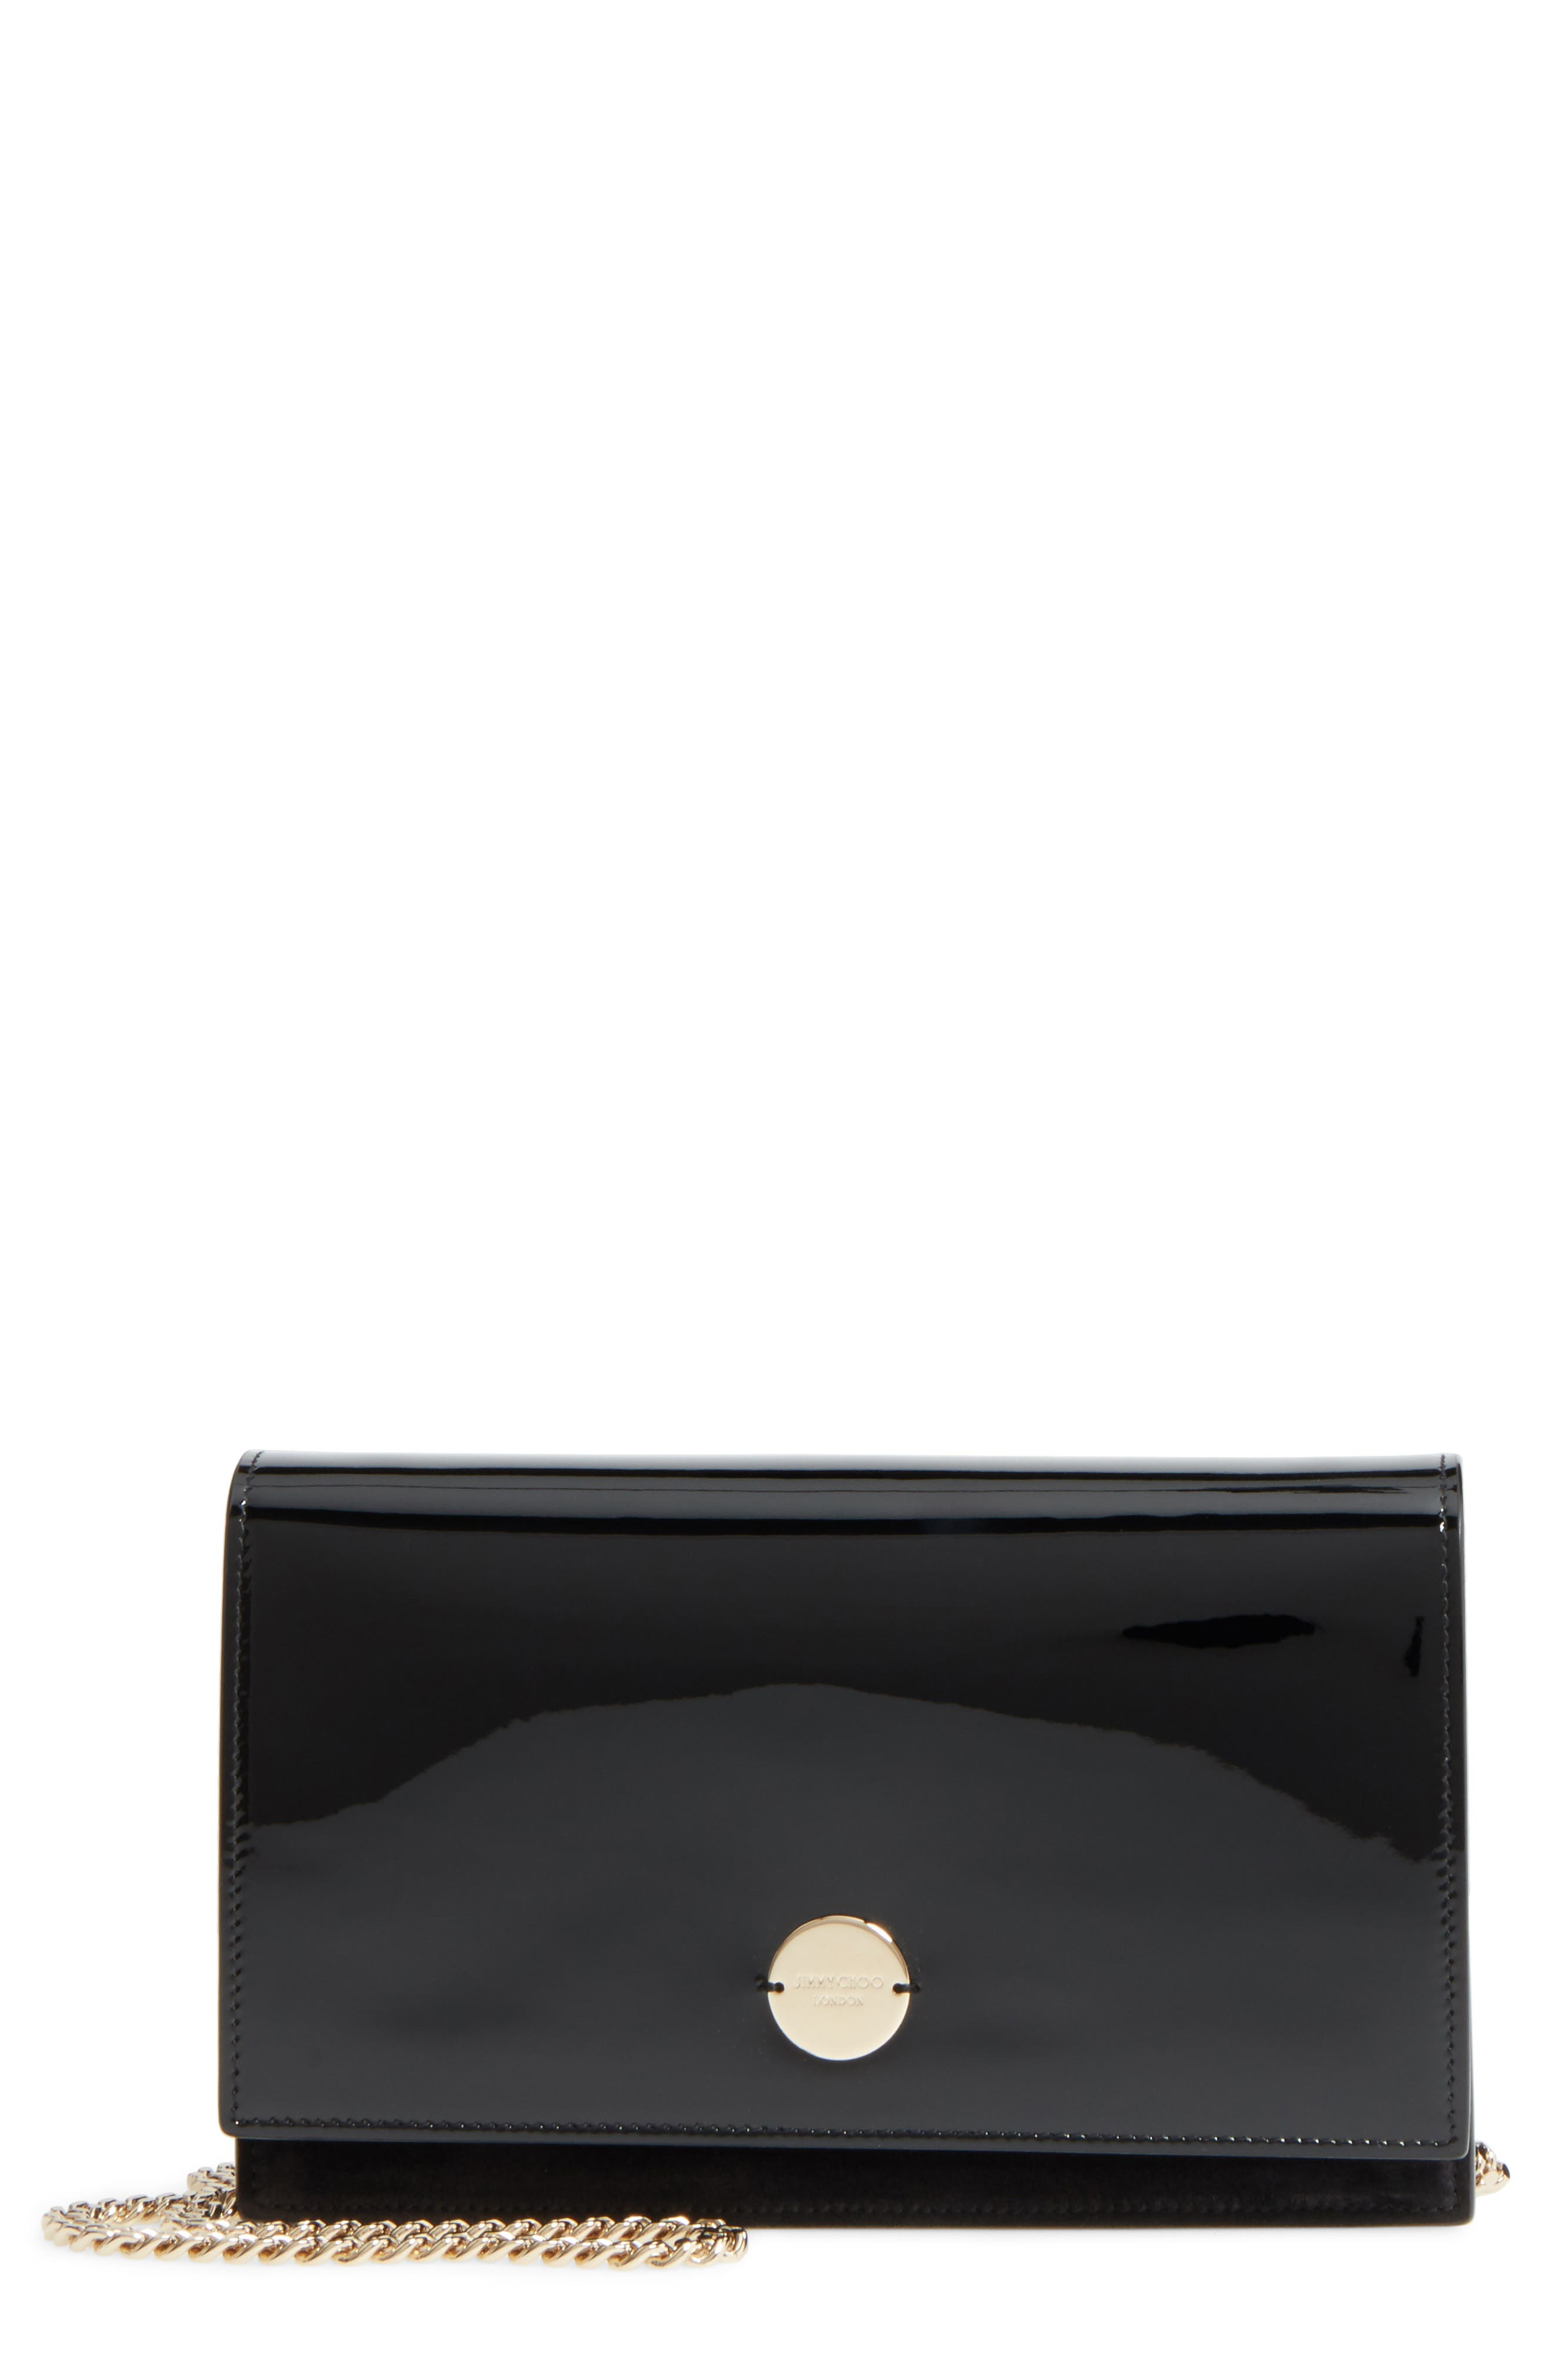 Jimmy Choo Florence Patent Leather & Suede Clutch